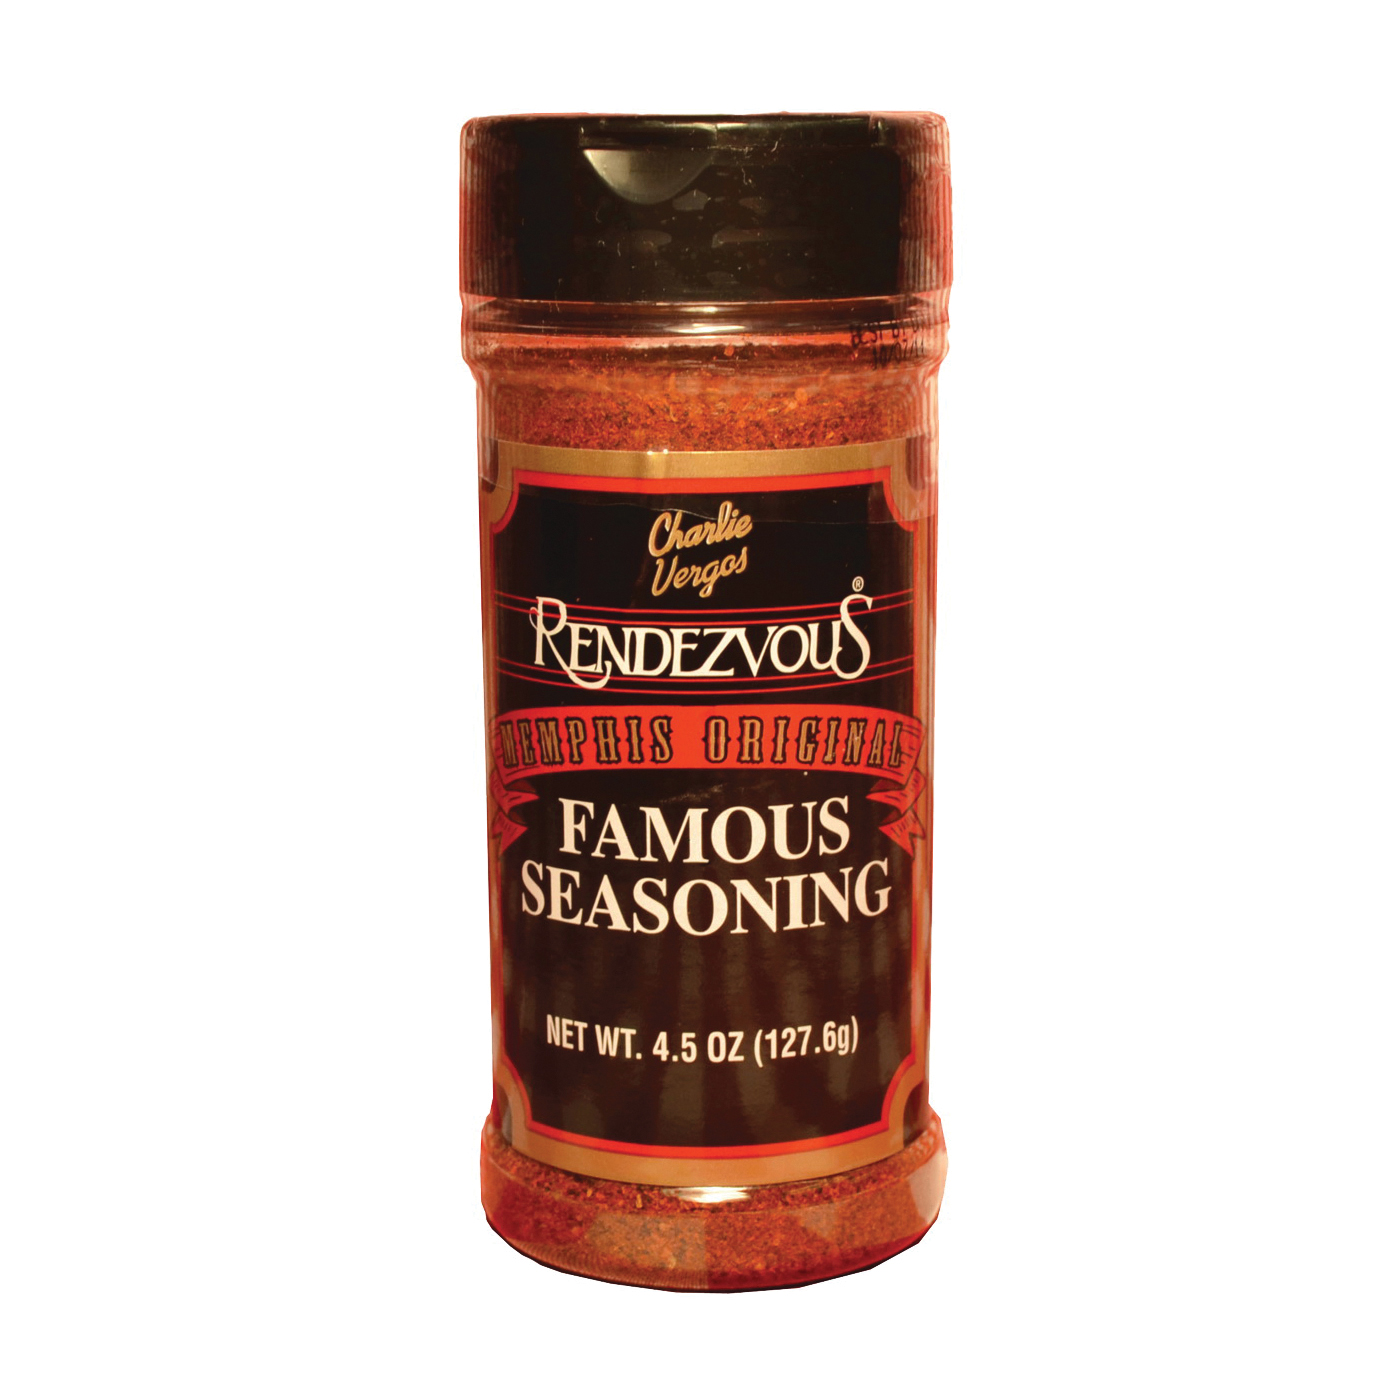 Picture of Charlie Vergos Rendezvous 1 Famous Seasoning, 4.5 oz Package, Bottle